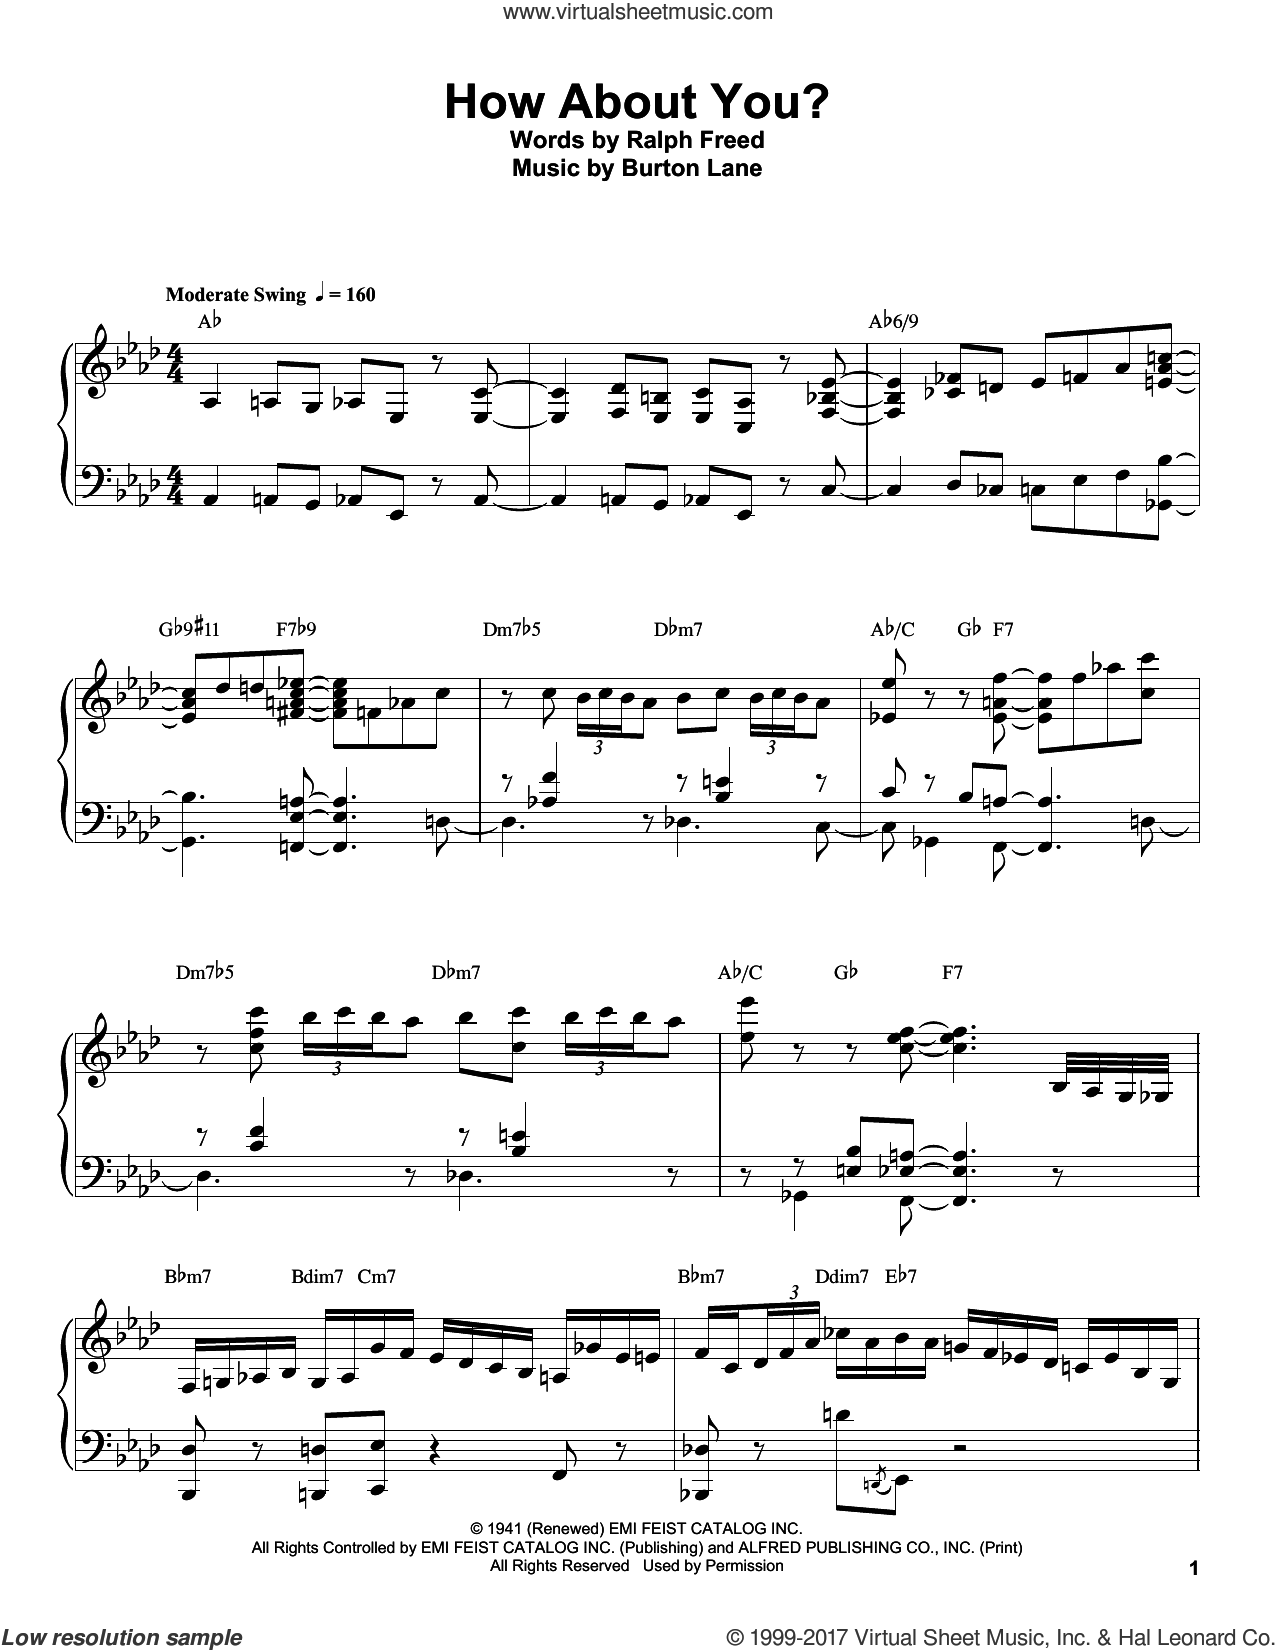 Peterson - How About You? sheet music for piano solo (transcription)